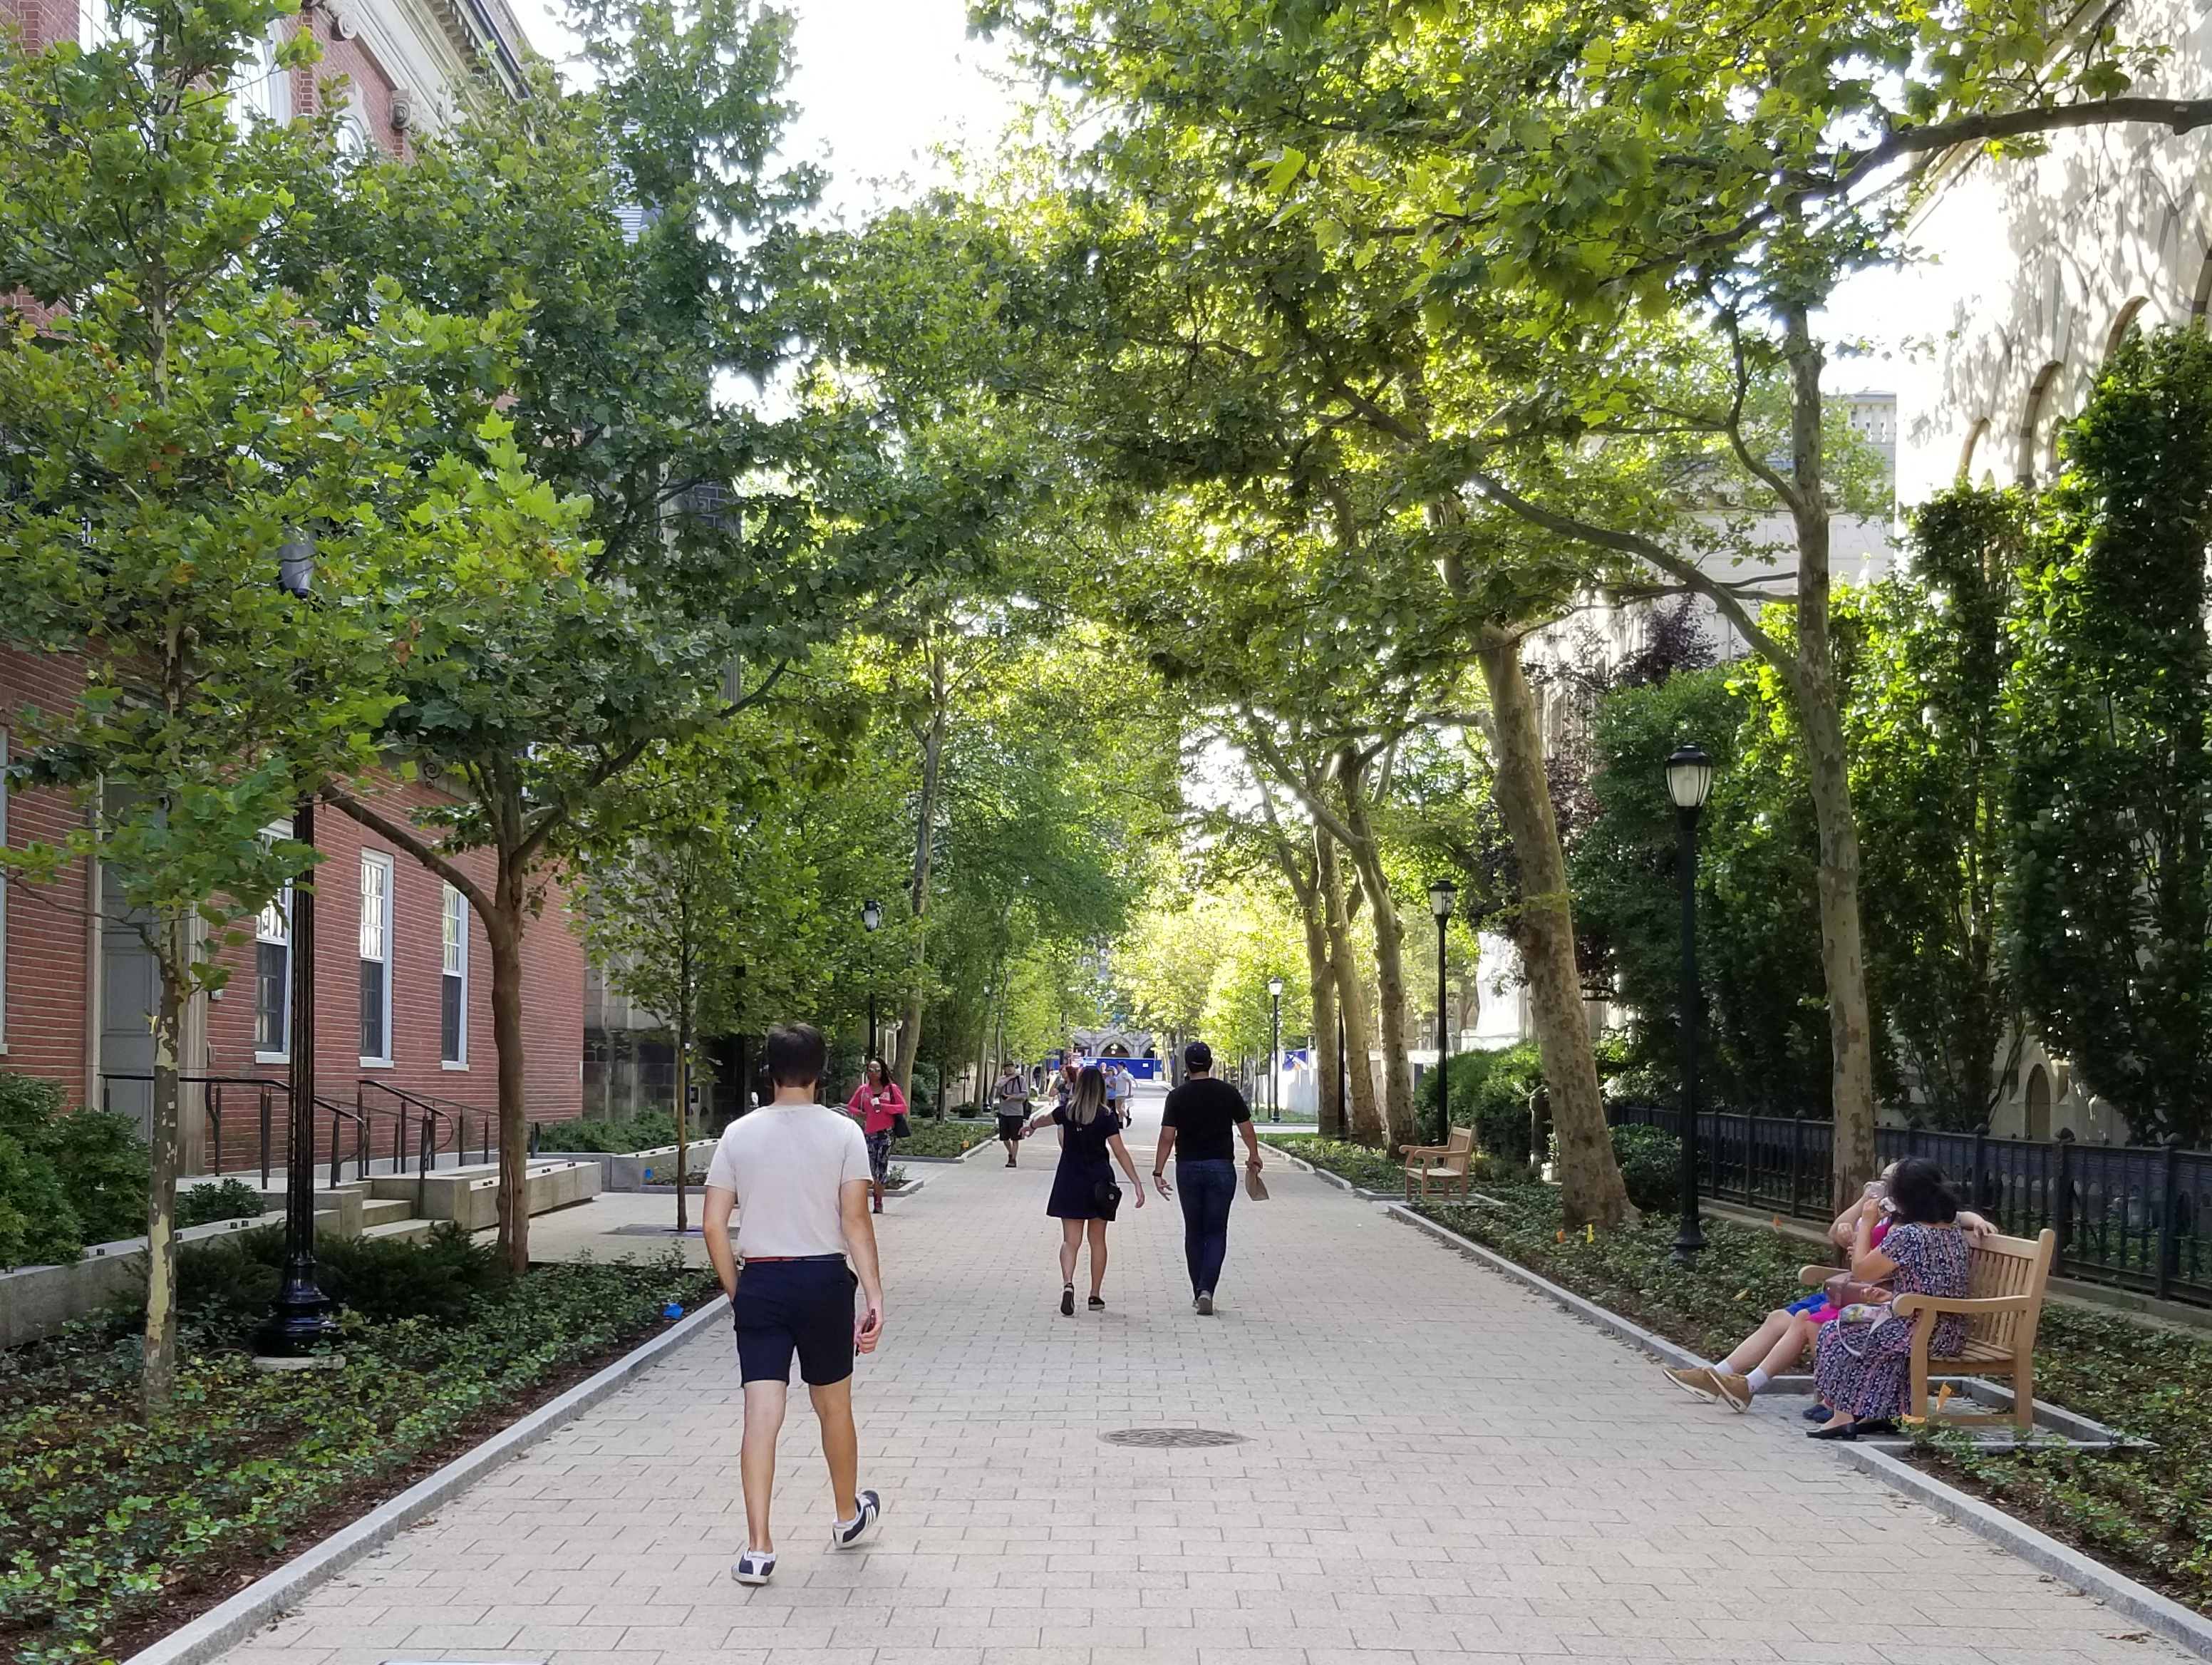 A NEW ENGLAND UNIVERSITY STREETSCAPE